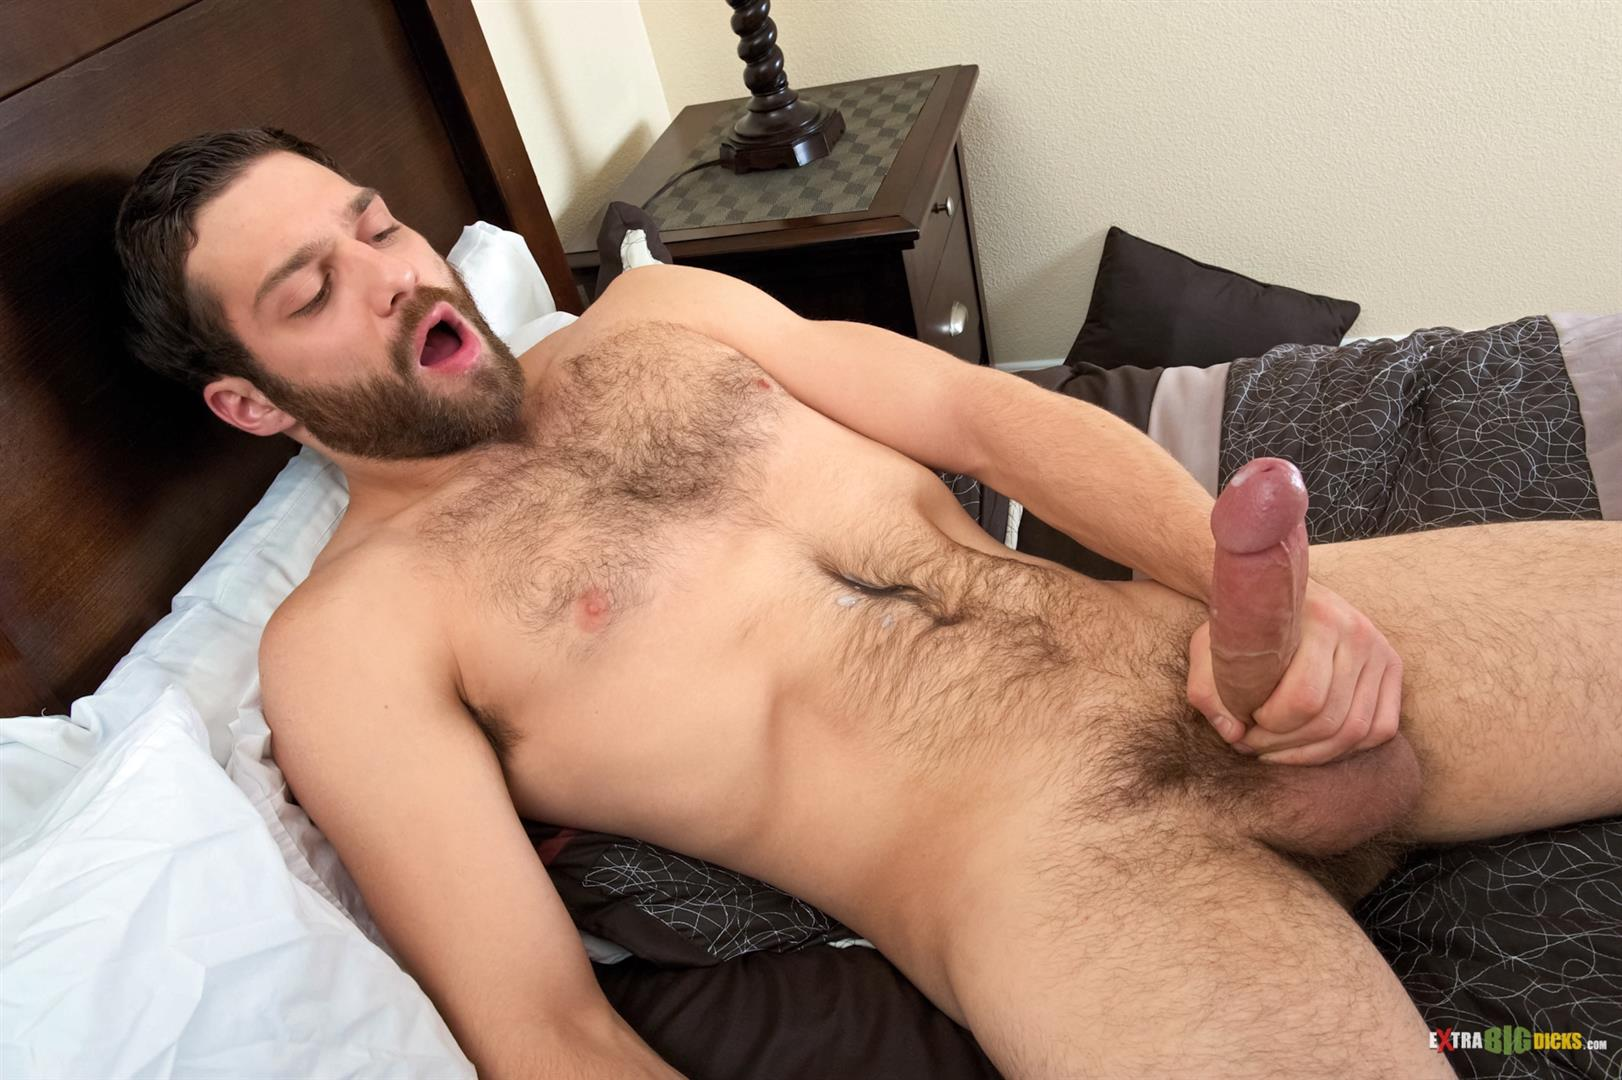 Teen tristan tugs big dick